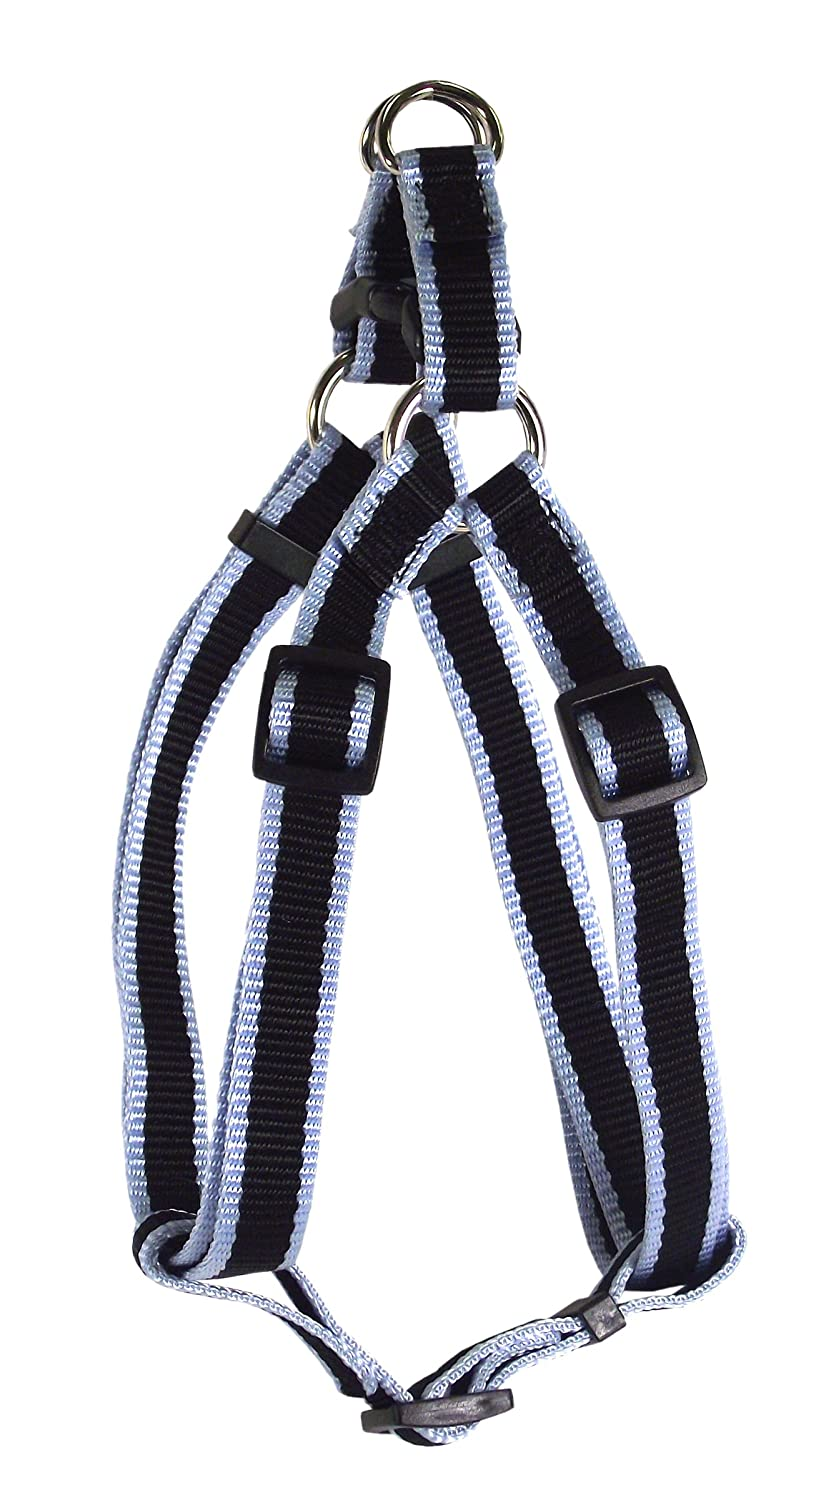 Triple Stripe Sky bluee 1\ Triple Stripe Sky bluee 1\ Hamilton 3-Stripe 1 by 30 to 40-Inch Adjustable Easy-On Dog Harness, Large, Sky bluee